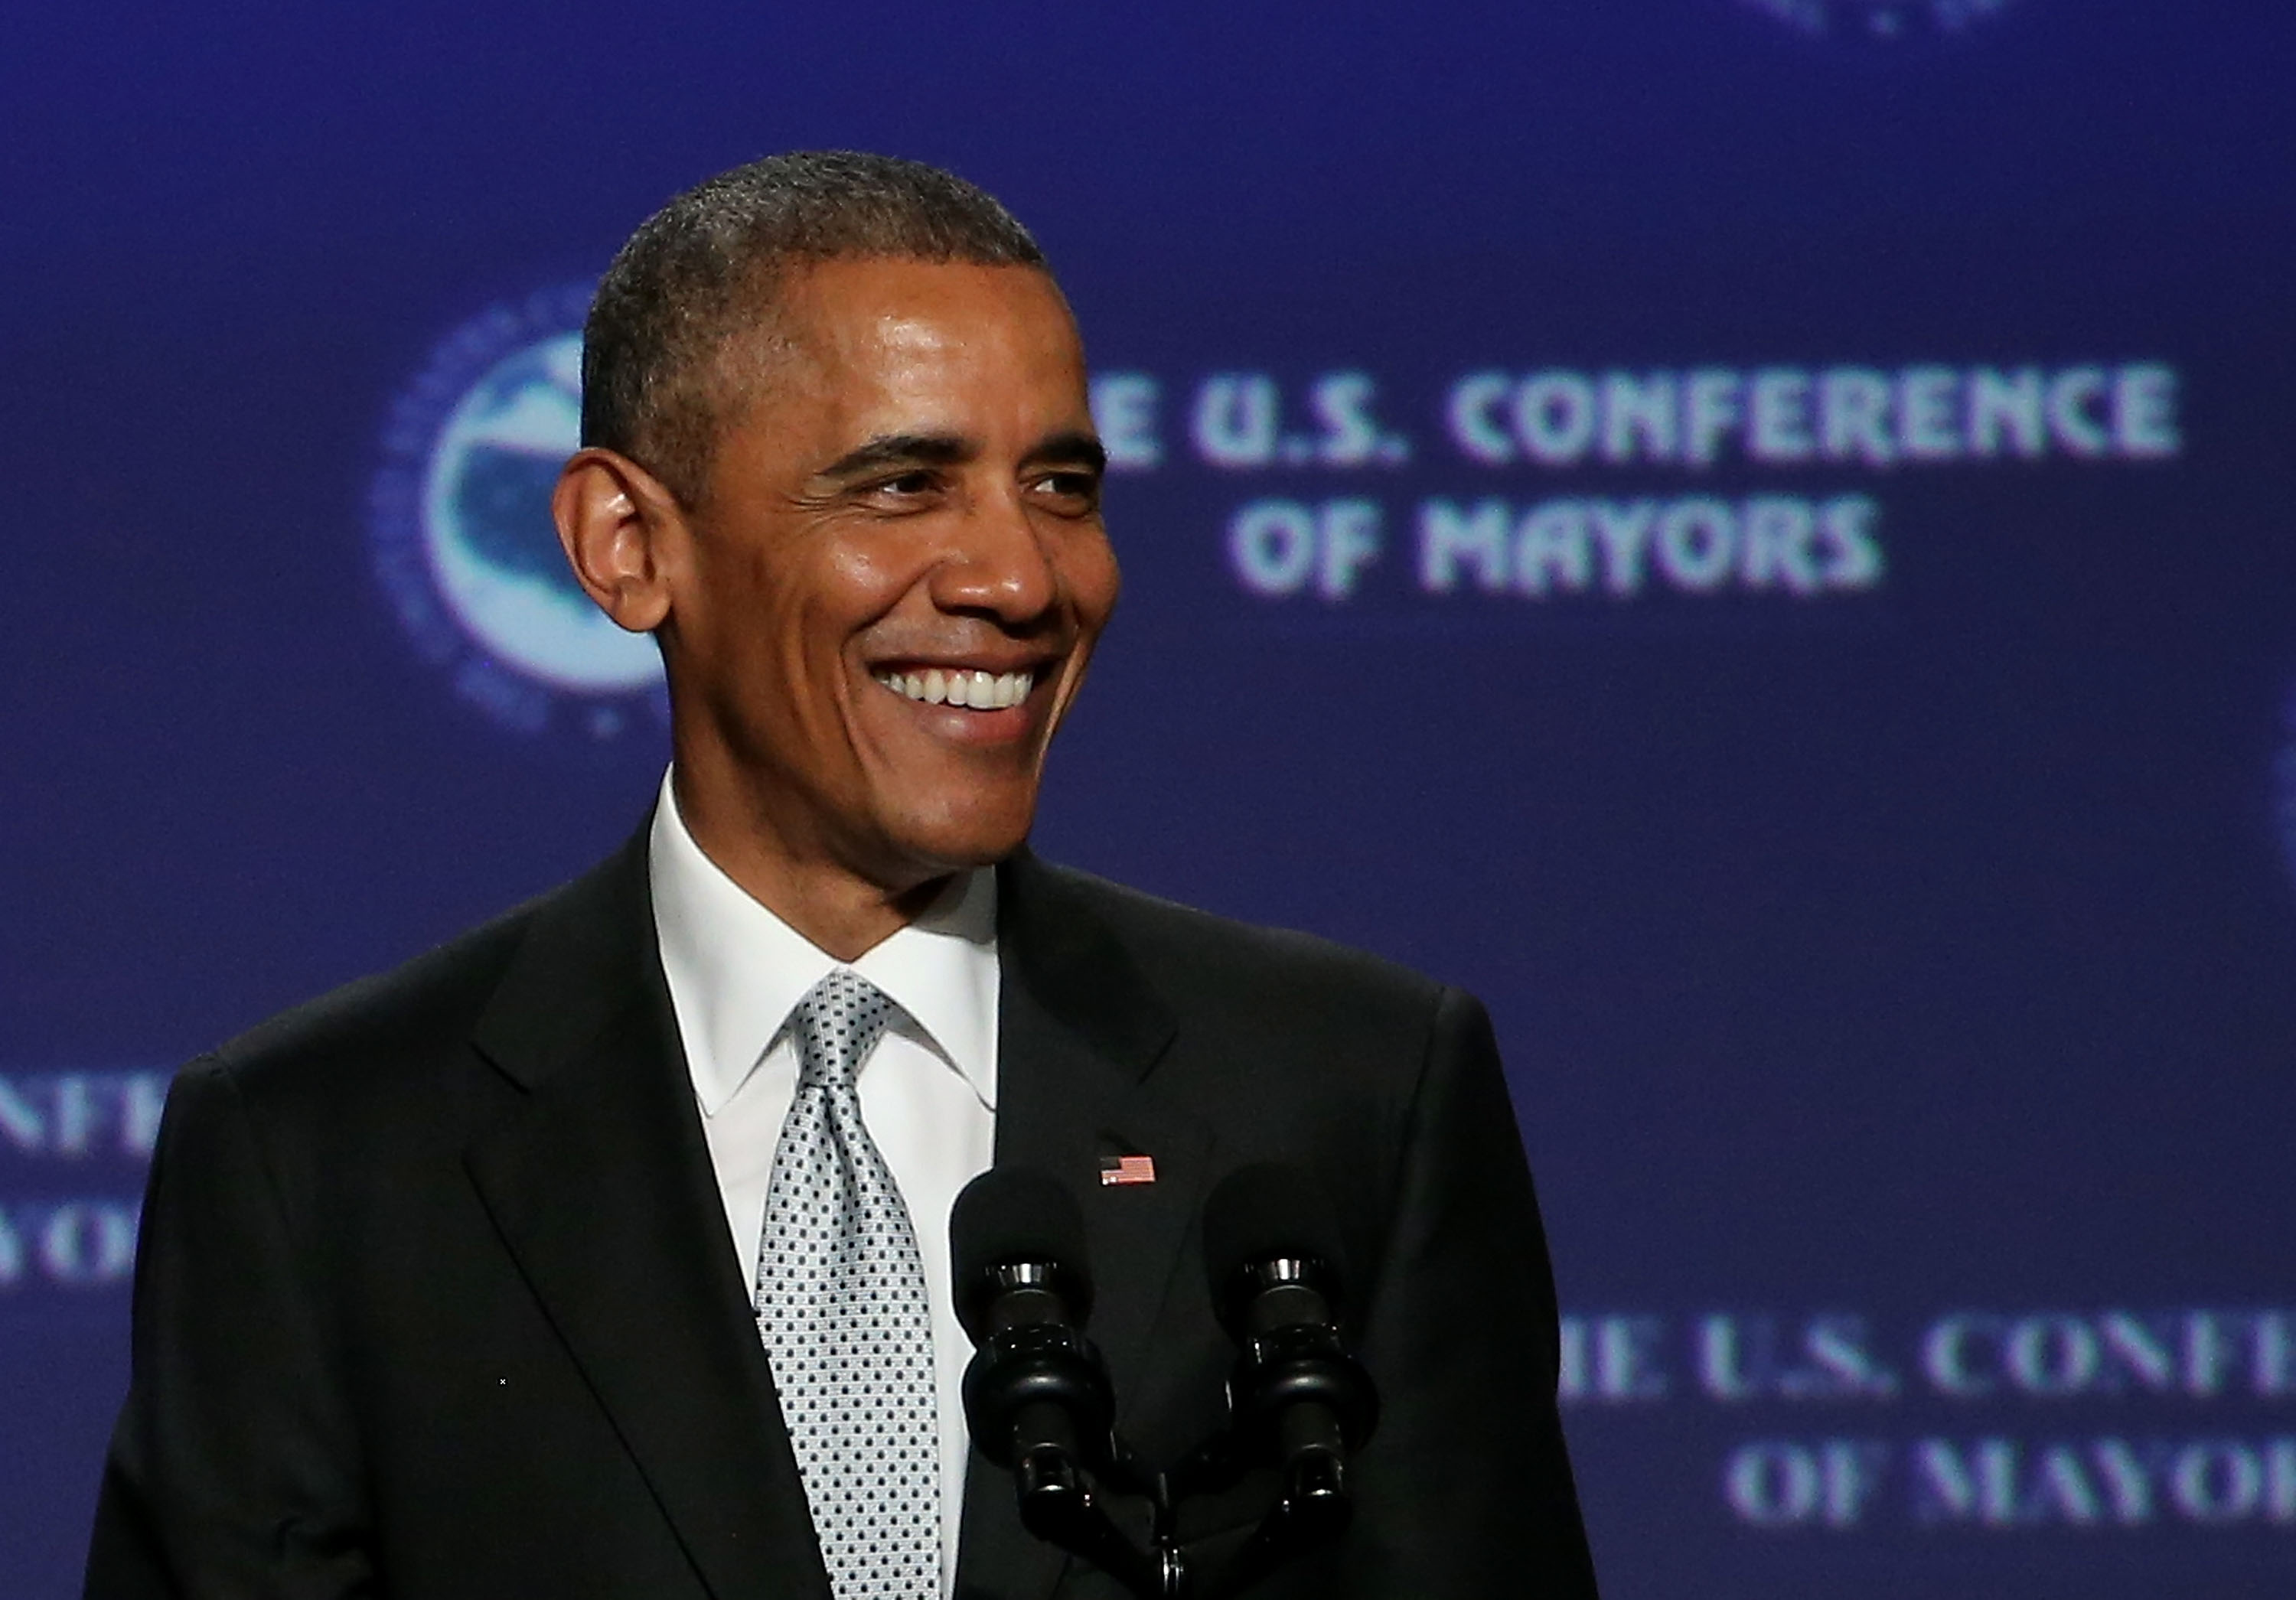 Obama Addresses US Conference Of Mayors Meeting In San Francisco